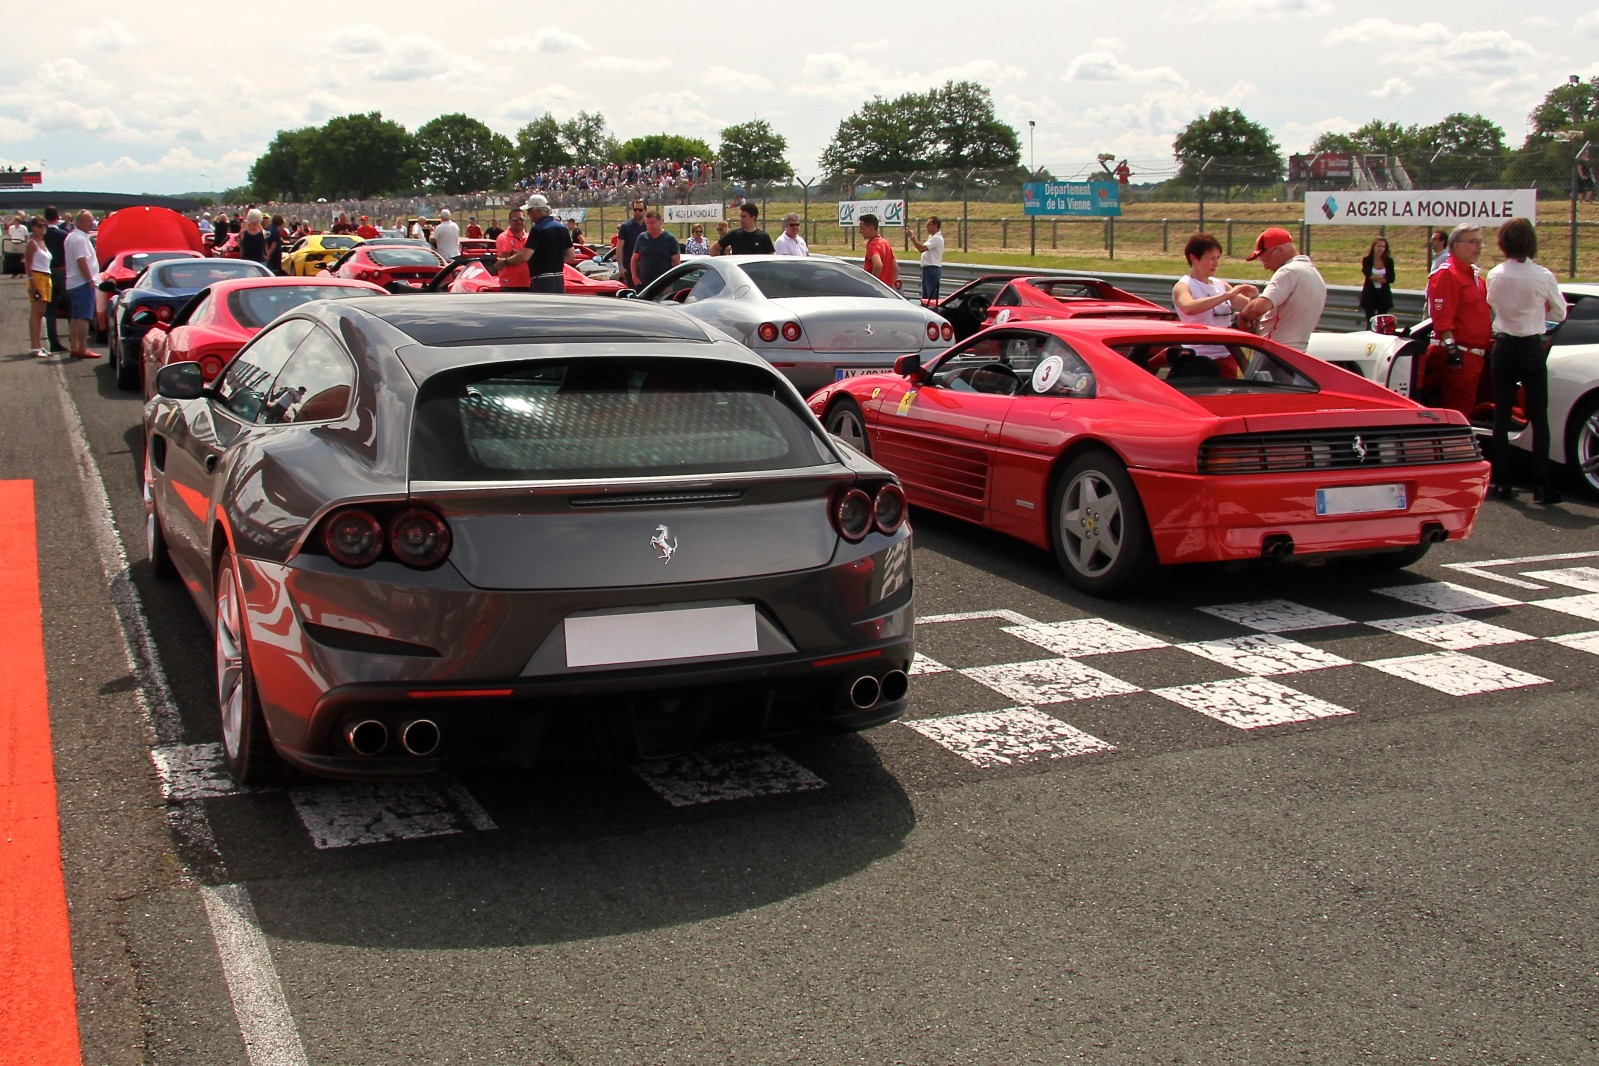 Ferrari GTC4Lusso - Ferrari 348TB - Parade - Sport et Collection 2018 - photo Ludo Ferrari